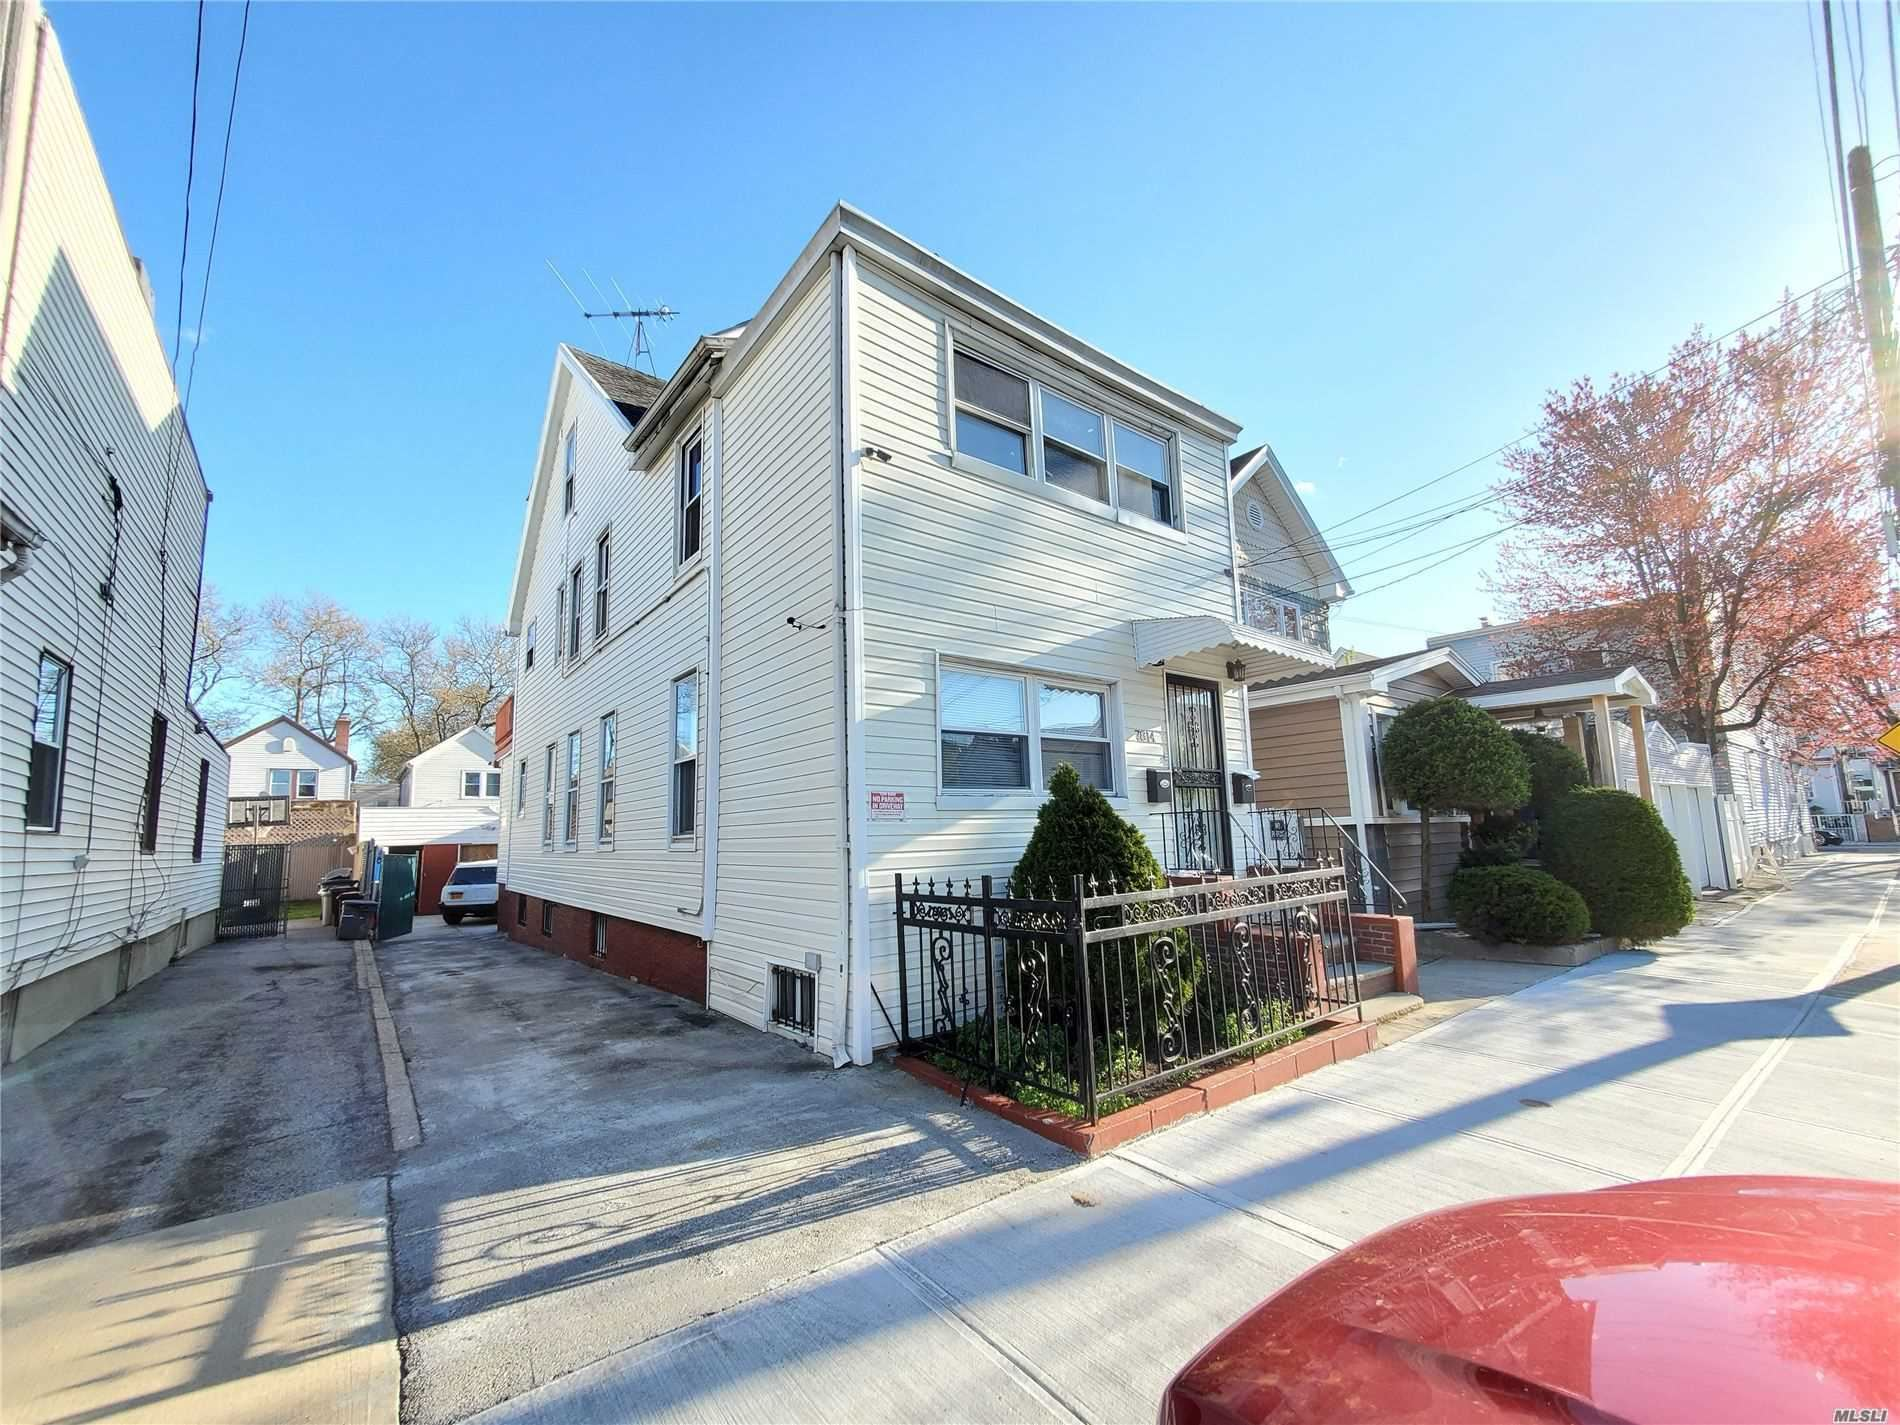 78-14 90th Road, Woodhaven, NY 11421 - MLS#: 3210592